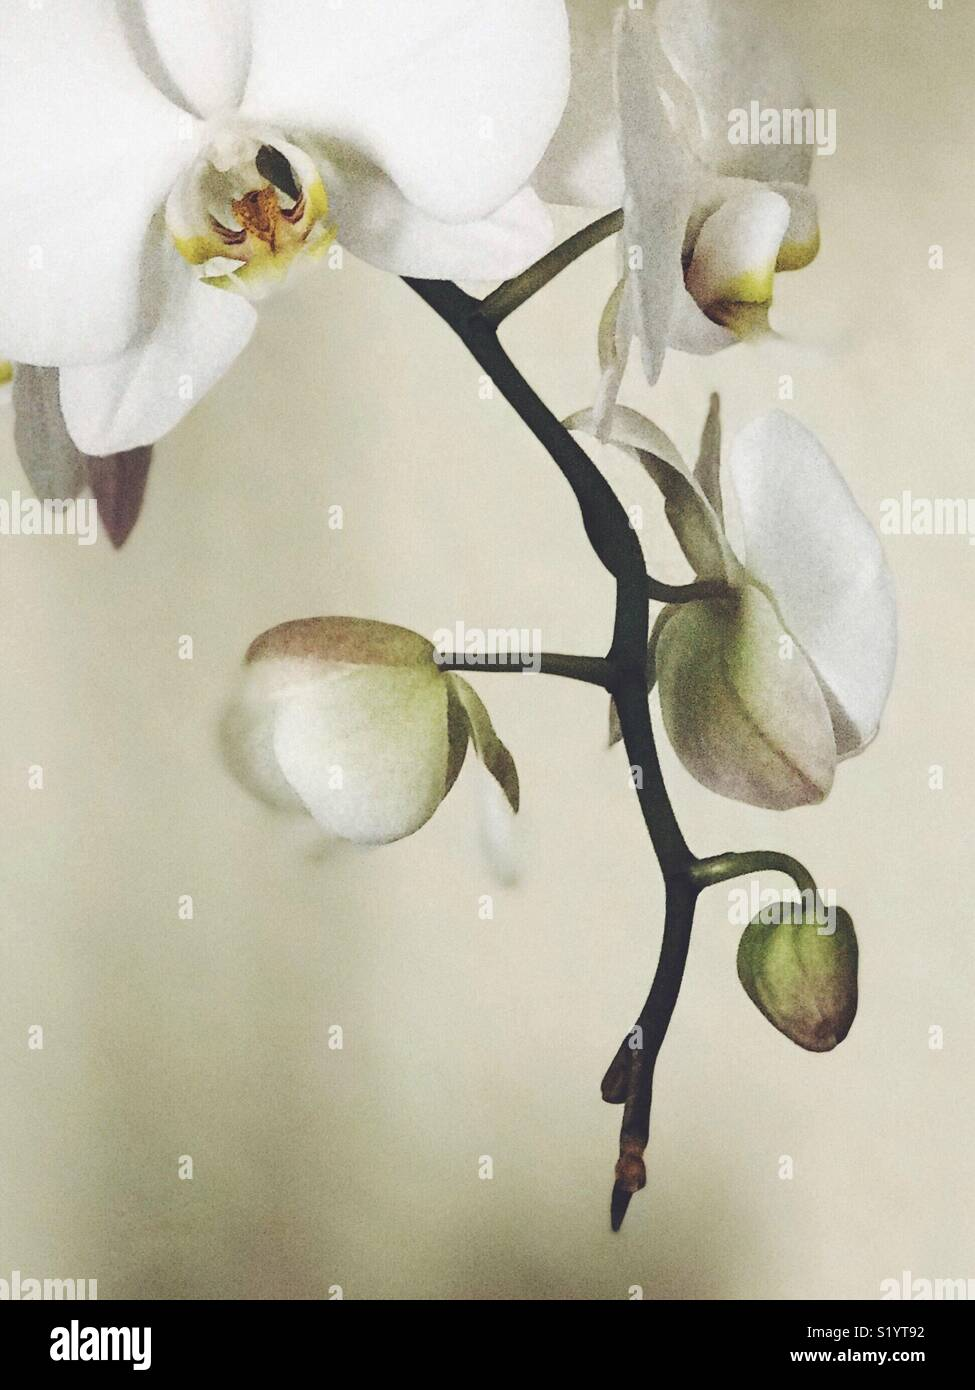 Beautiful, artistic and painterly orchid branch with white flowers, warm tones and room for copy. - Stock Image